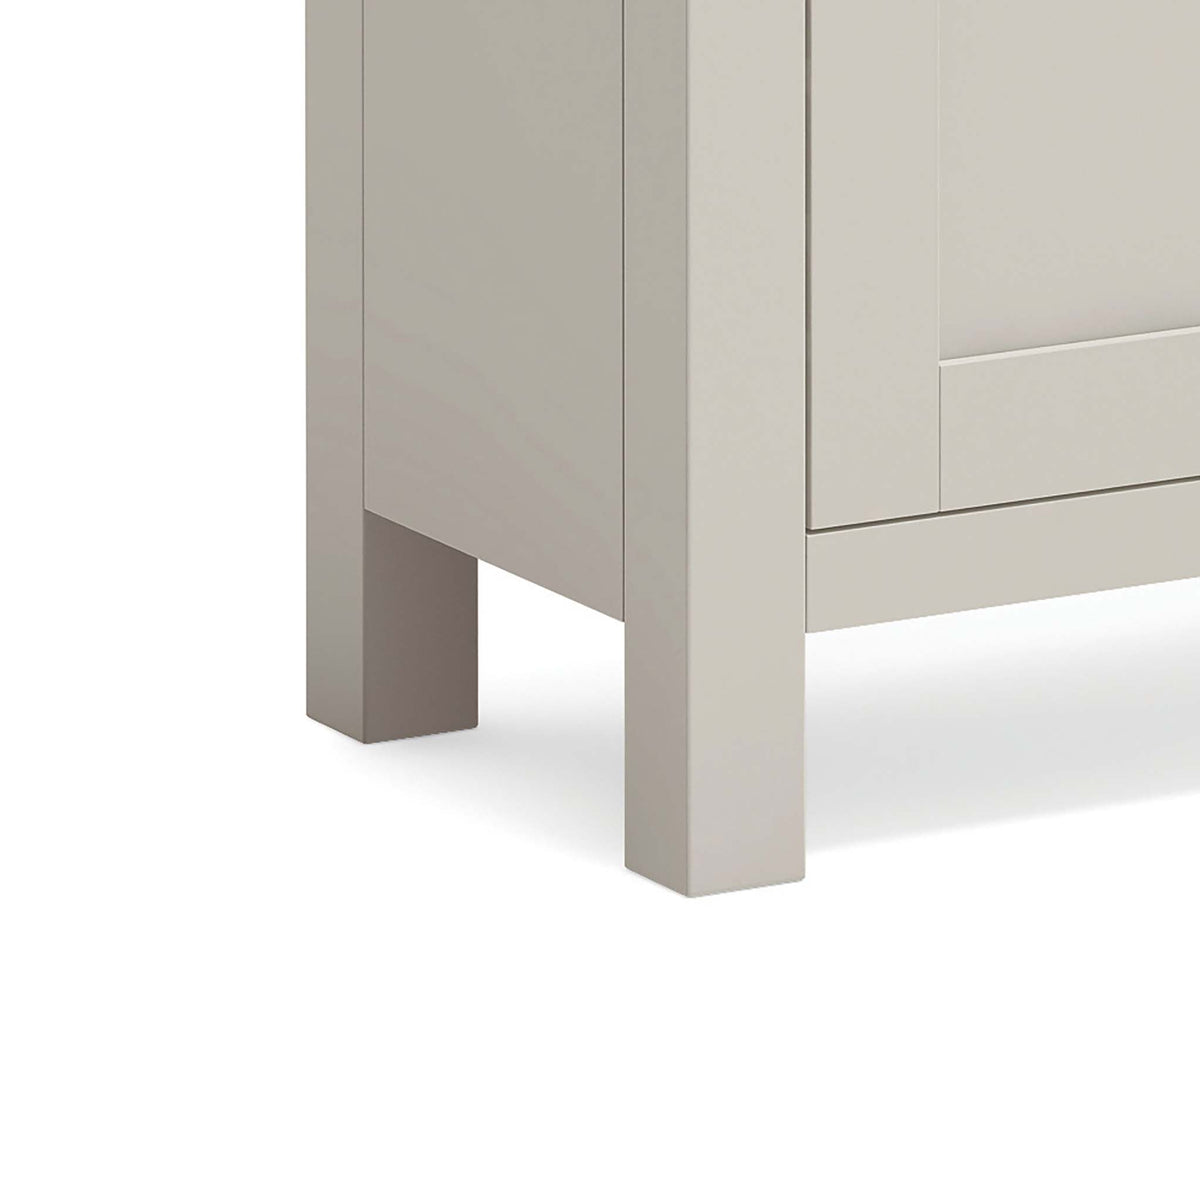 close up of the stone grey painted solid wood legs on the Dorset Stone Grey Mini Sideboard Cabinet